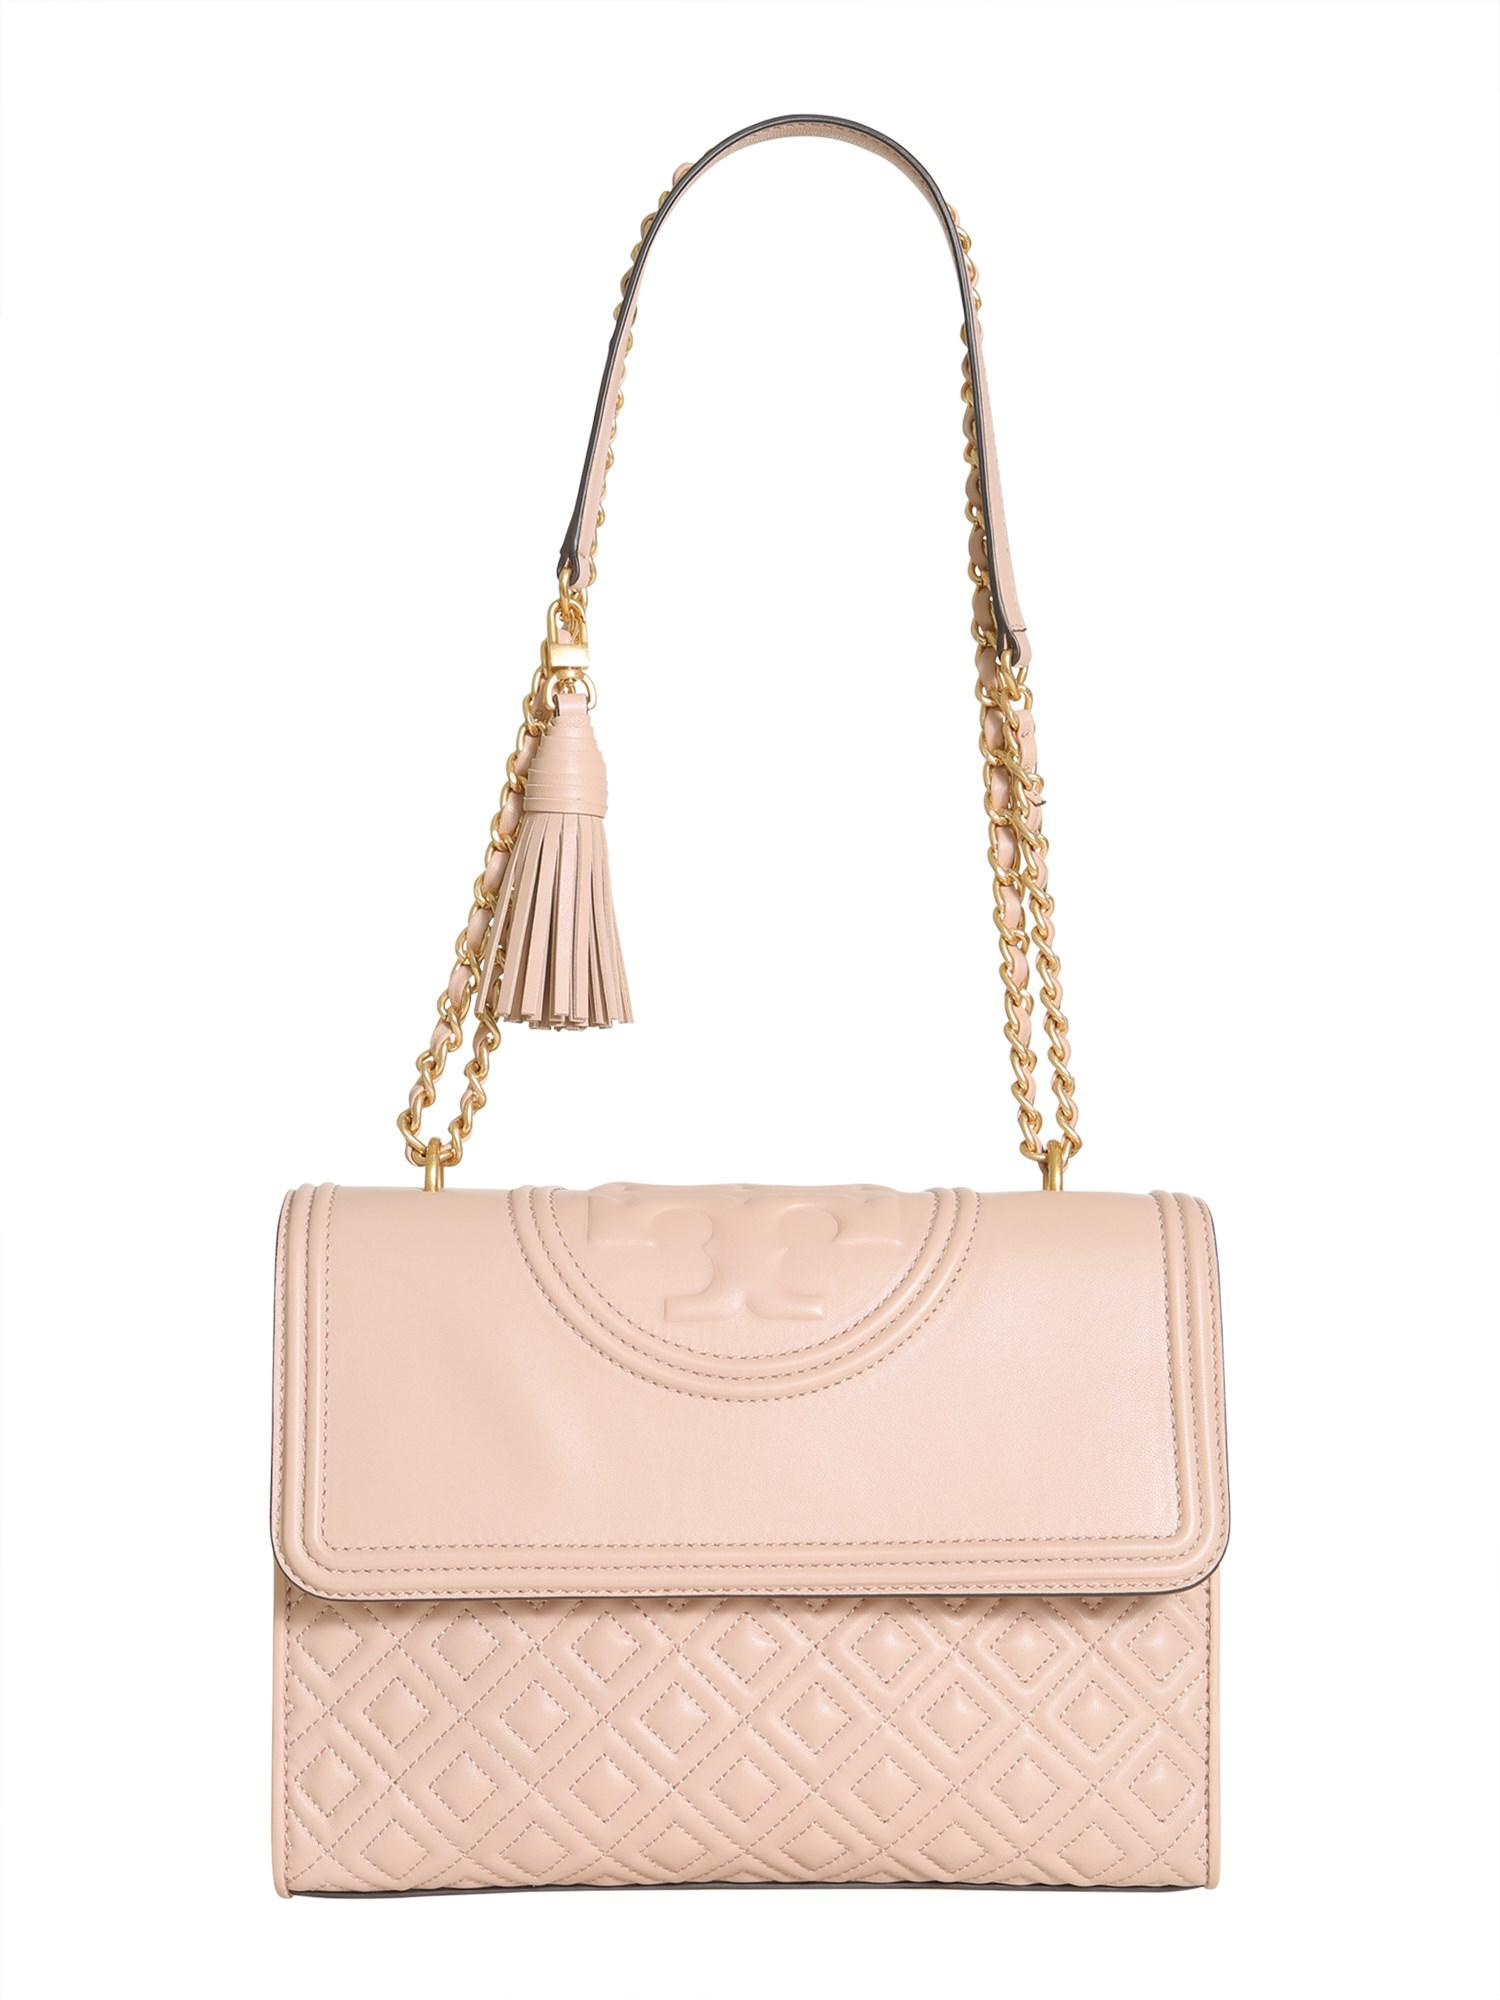 5d7be5d54076 Lyst - Tory Burch Flaming Leather Bag